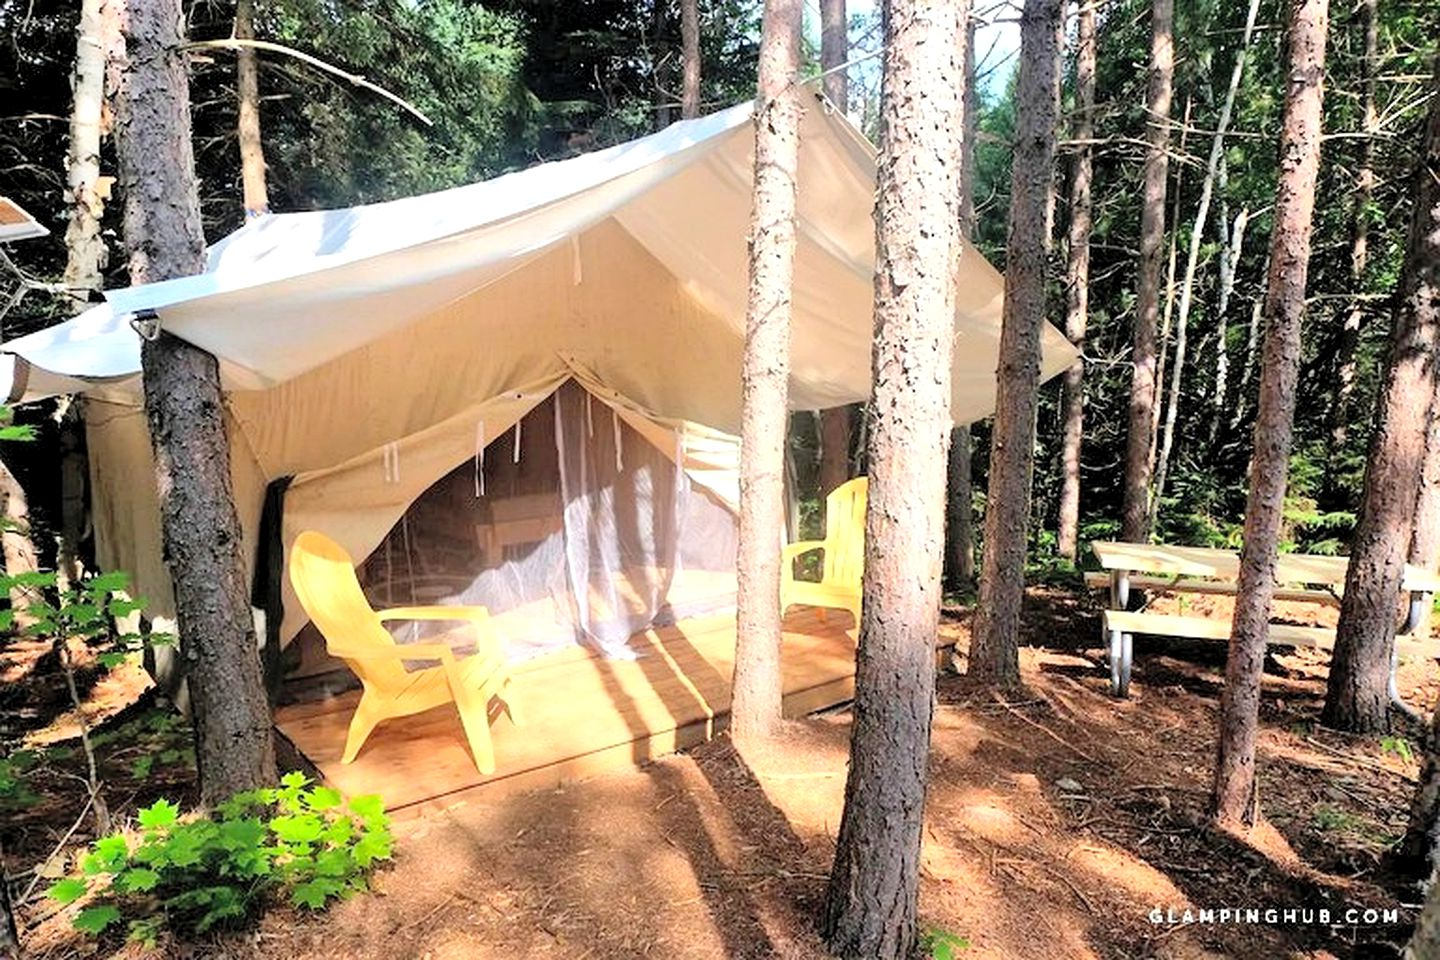 Safari Tents (Whitney, Ontario, Canada)